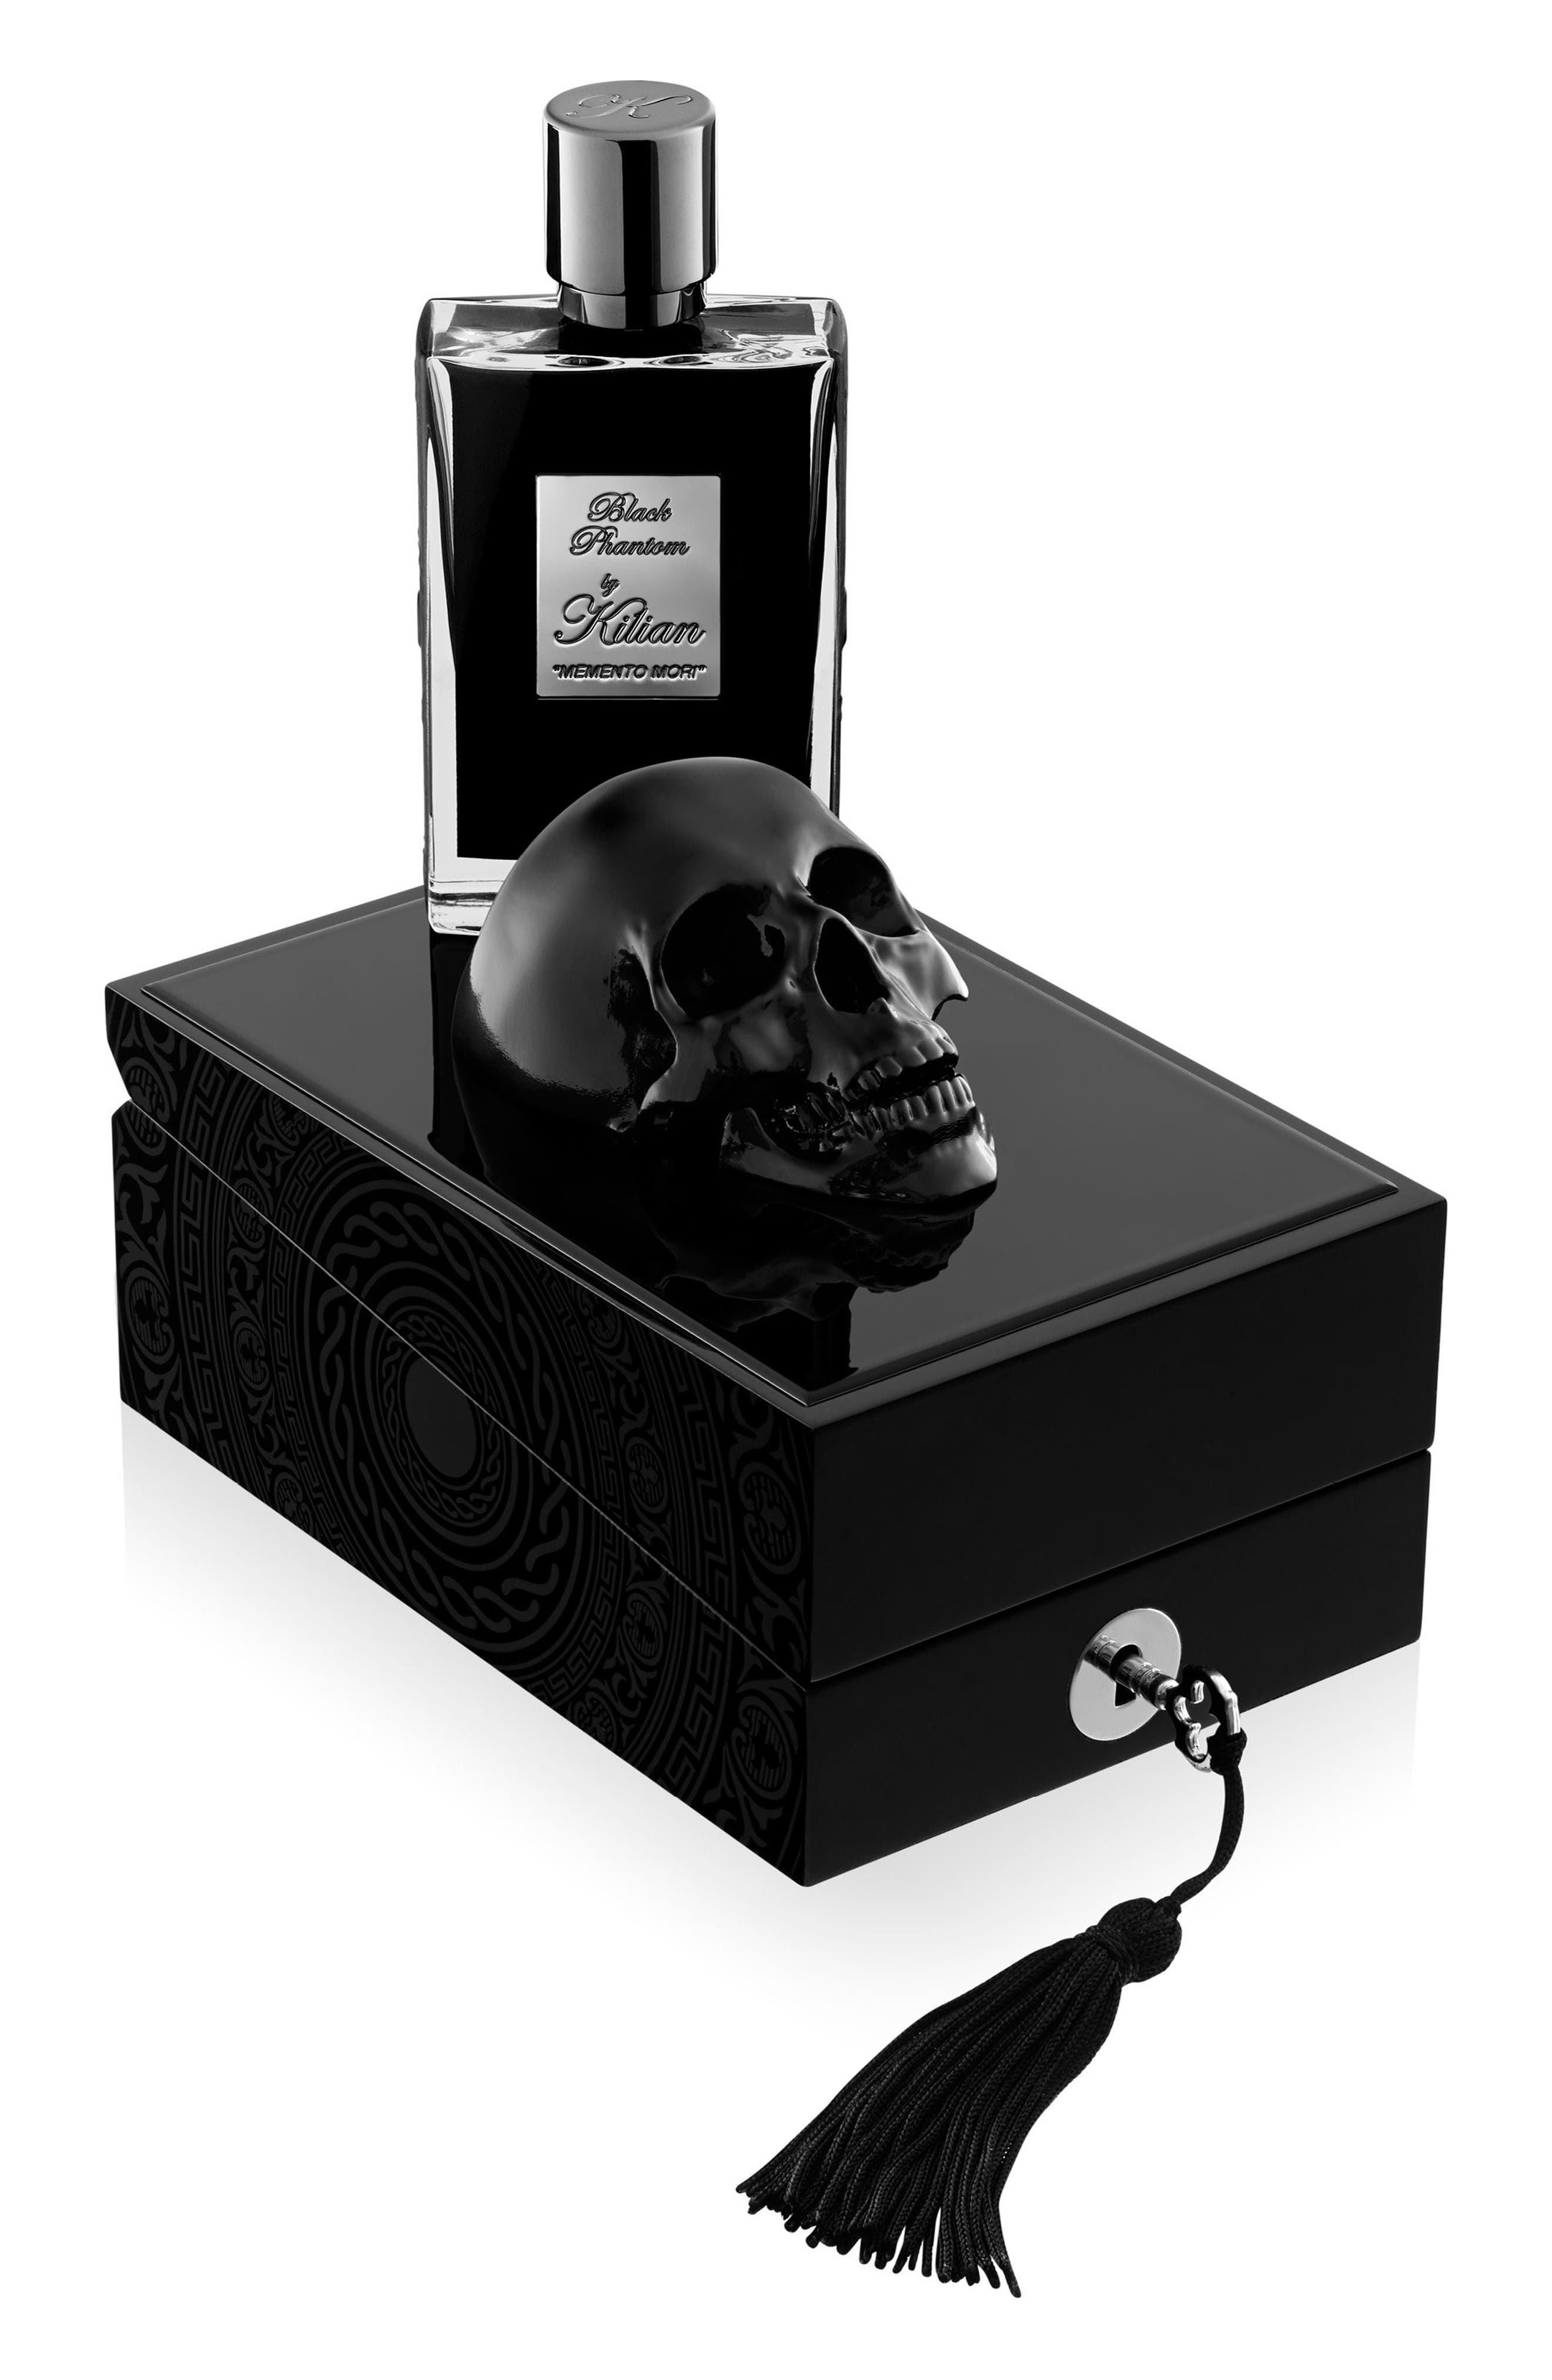 Kilian Black Phantom Memento Mori Eau de Parfum Refillable Spray